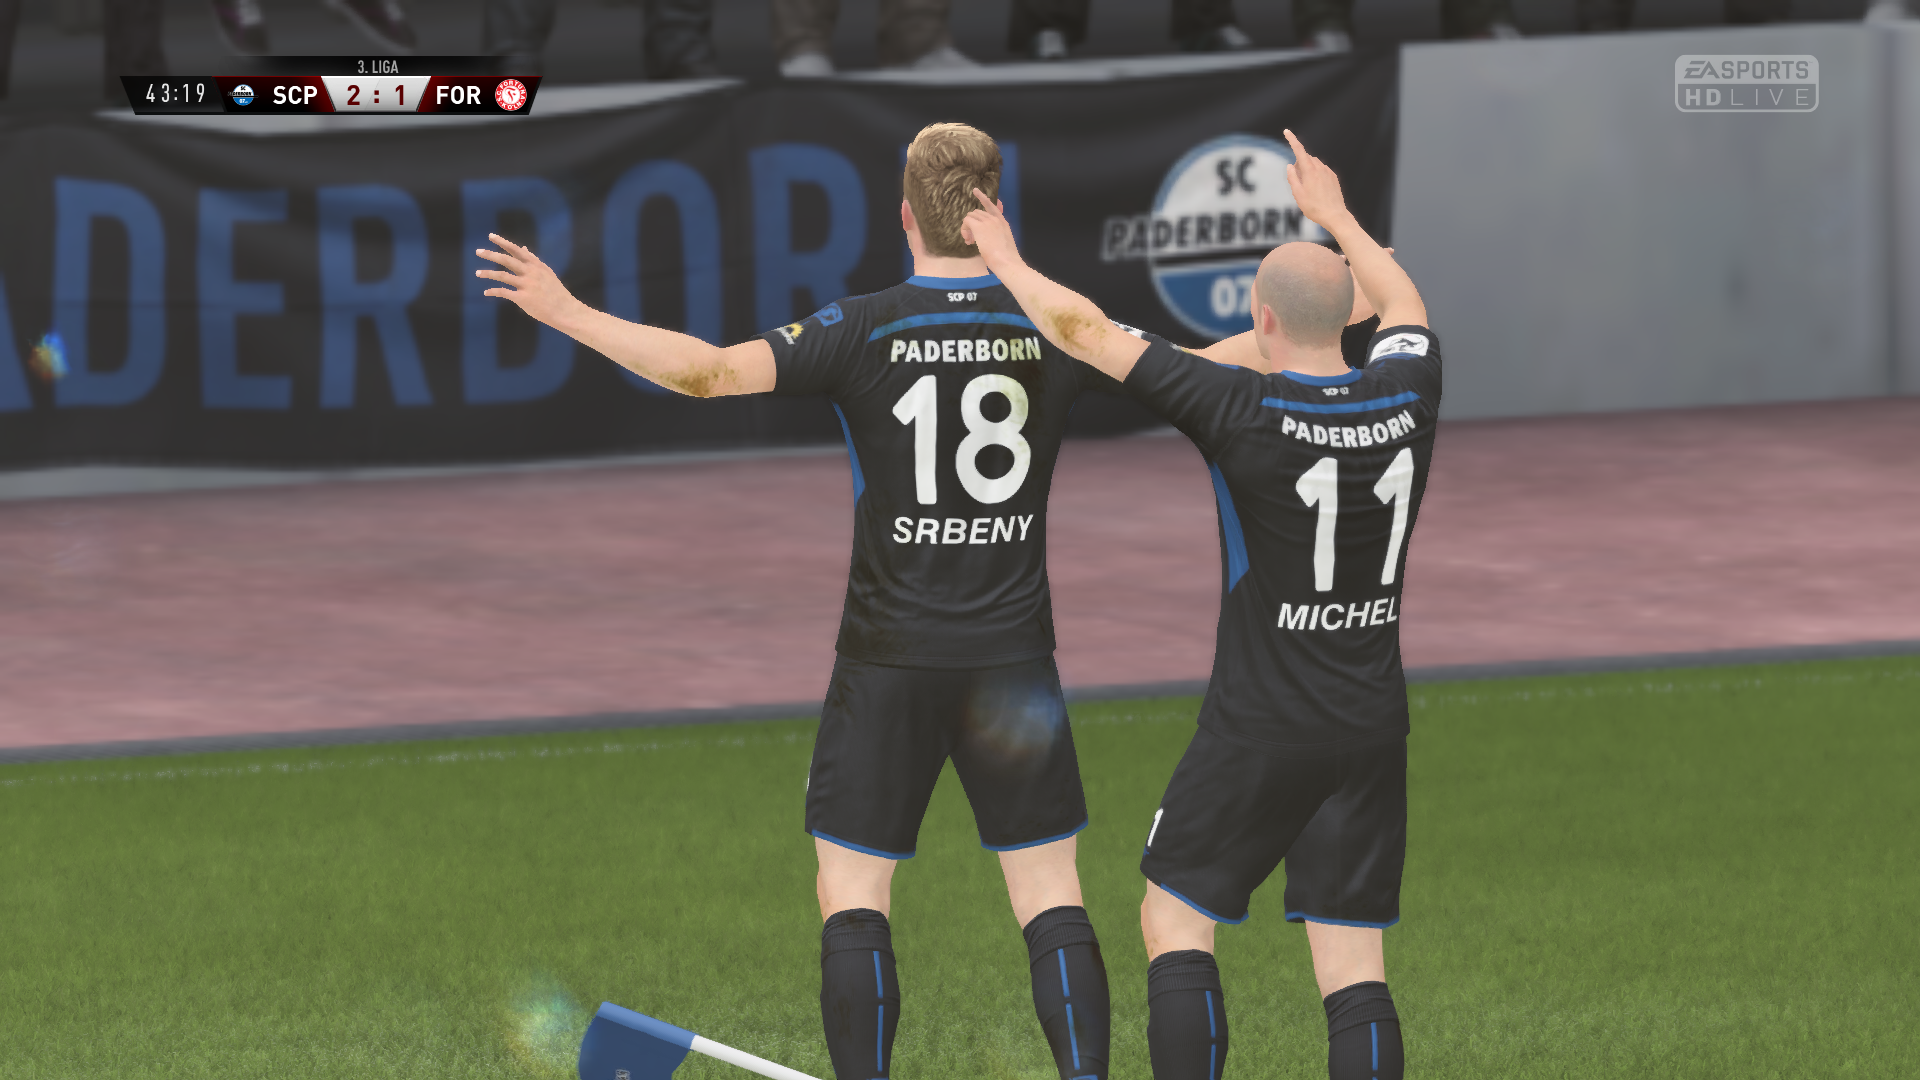 FIFA 18 Screenshot 2017.12.08 - 17.04.53.35